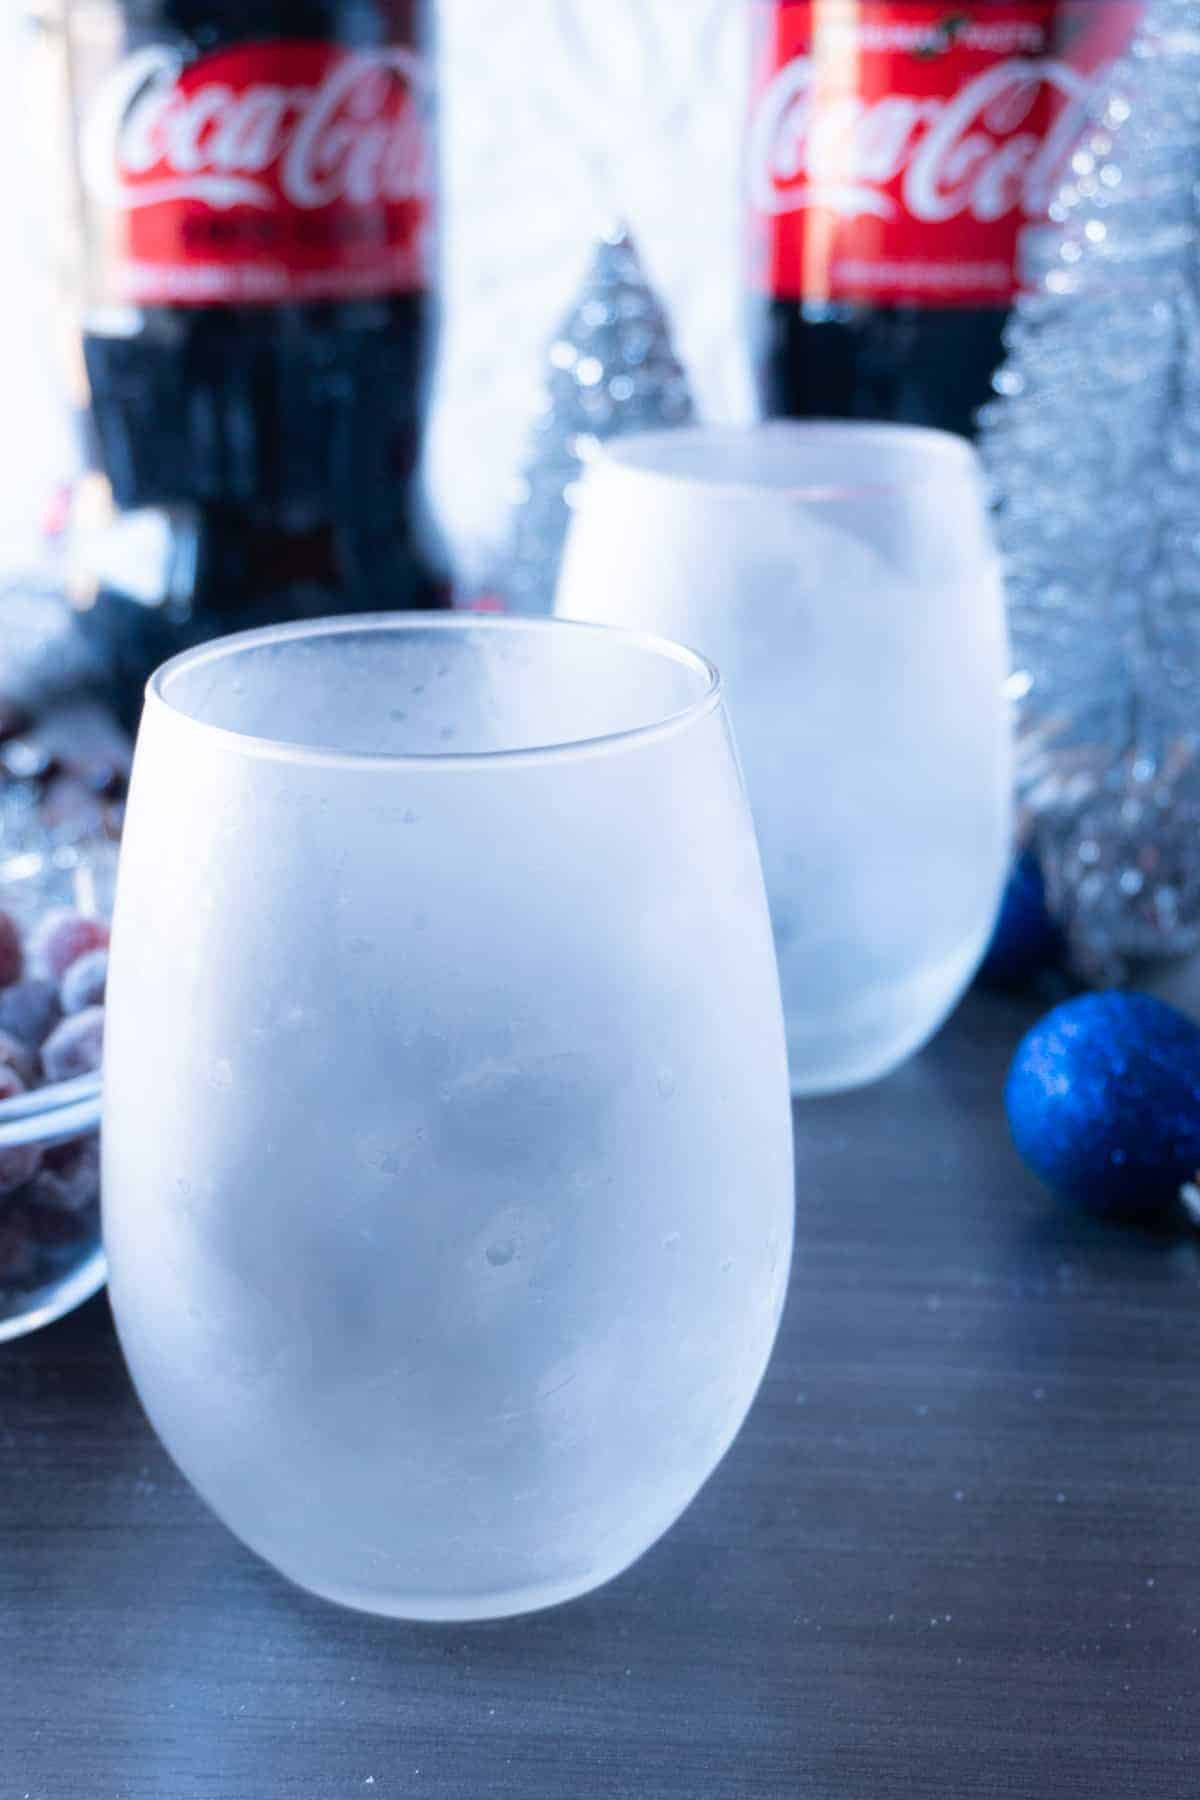 Frosted glasses